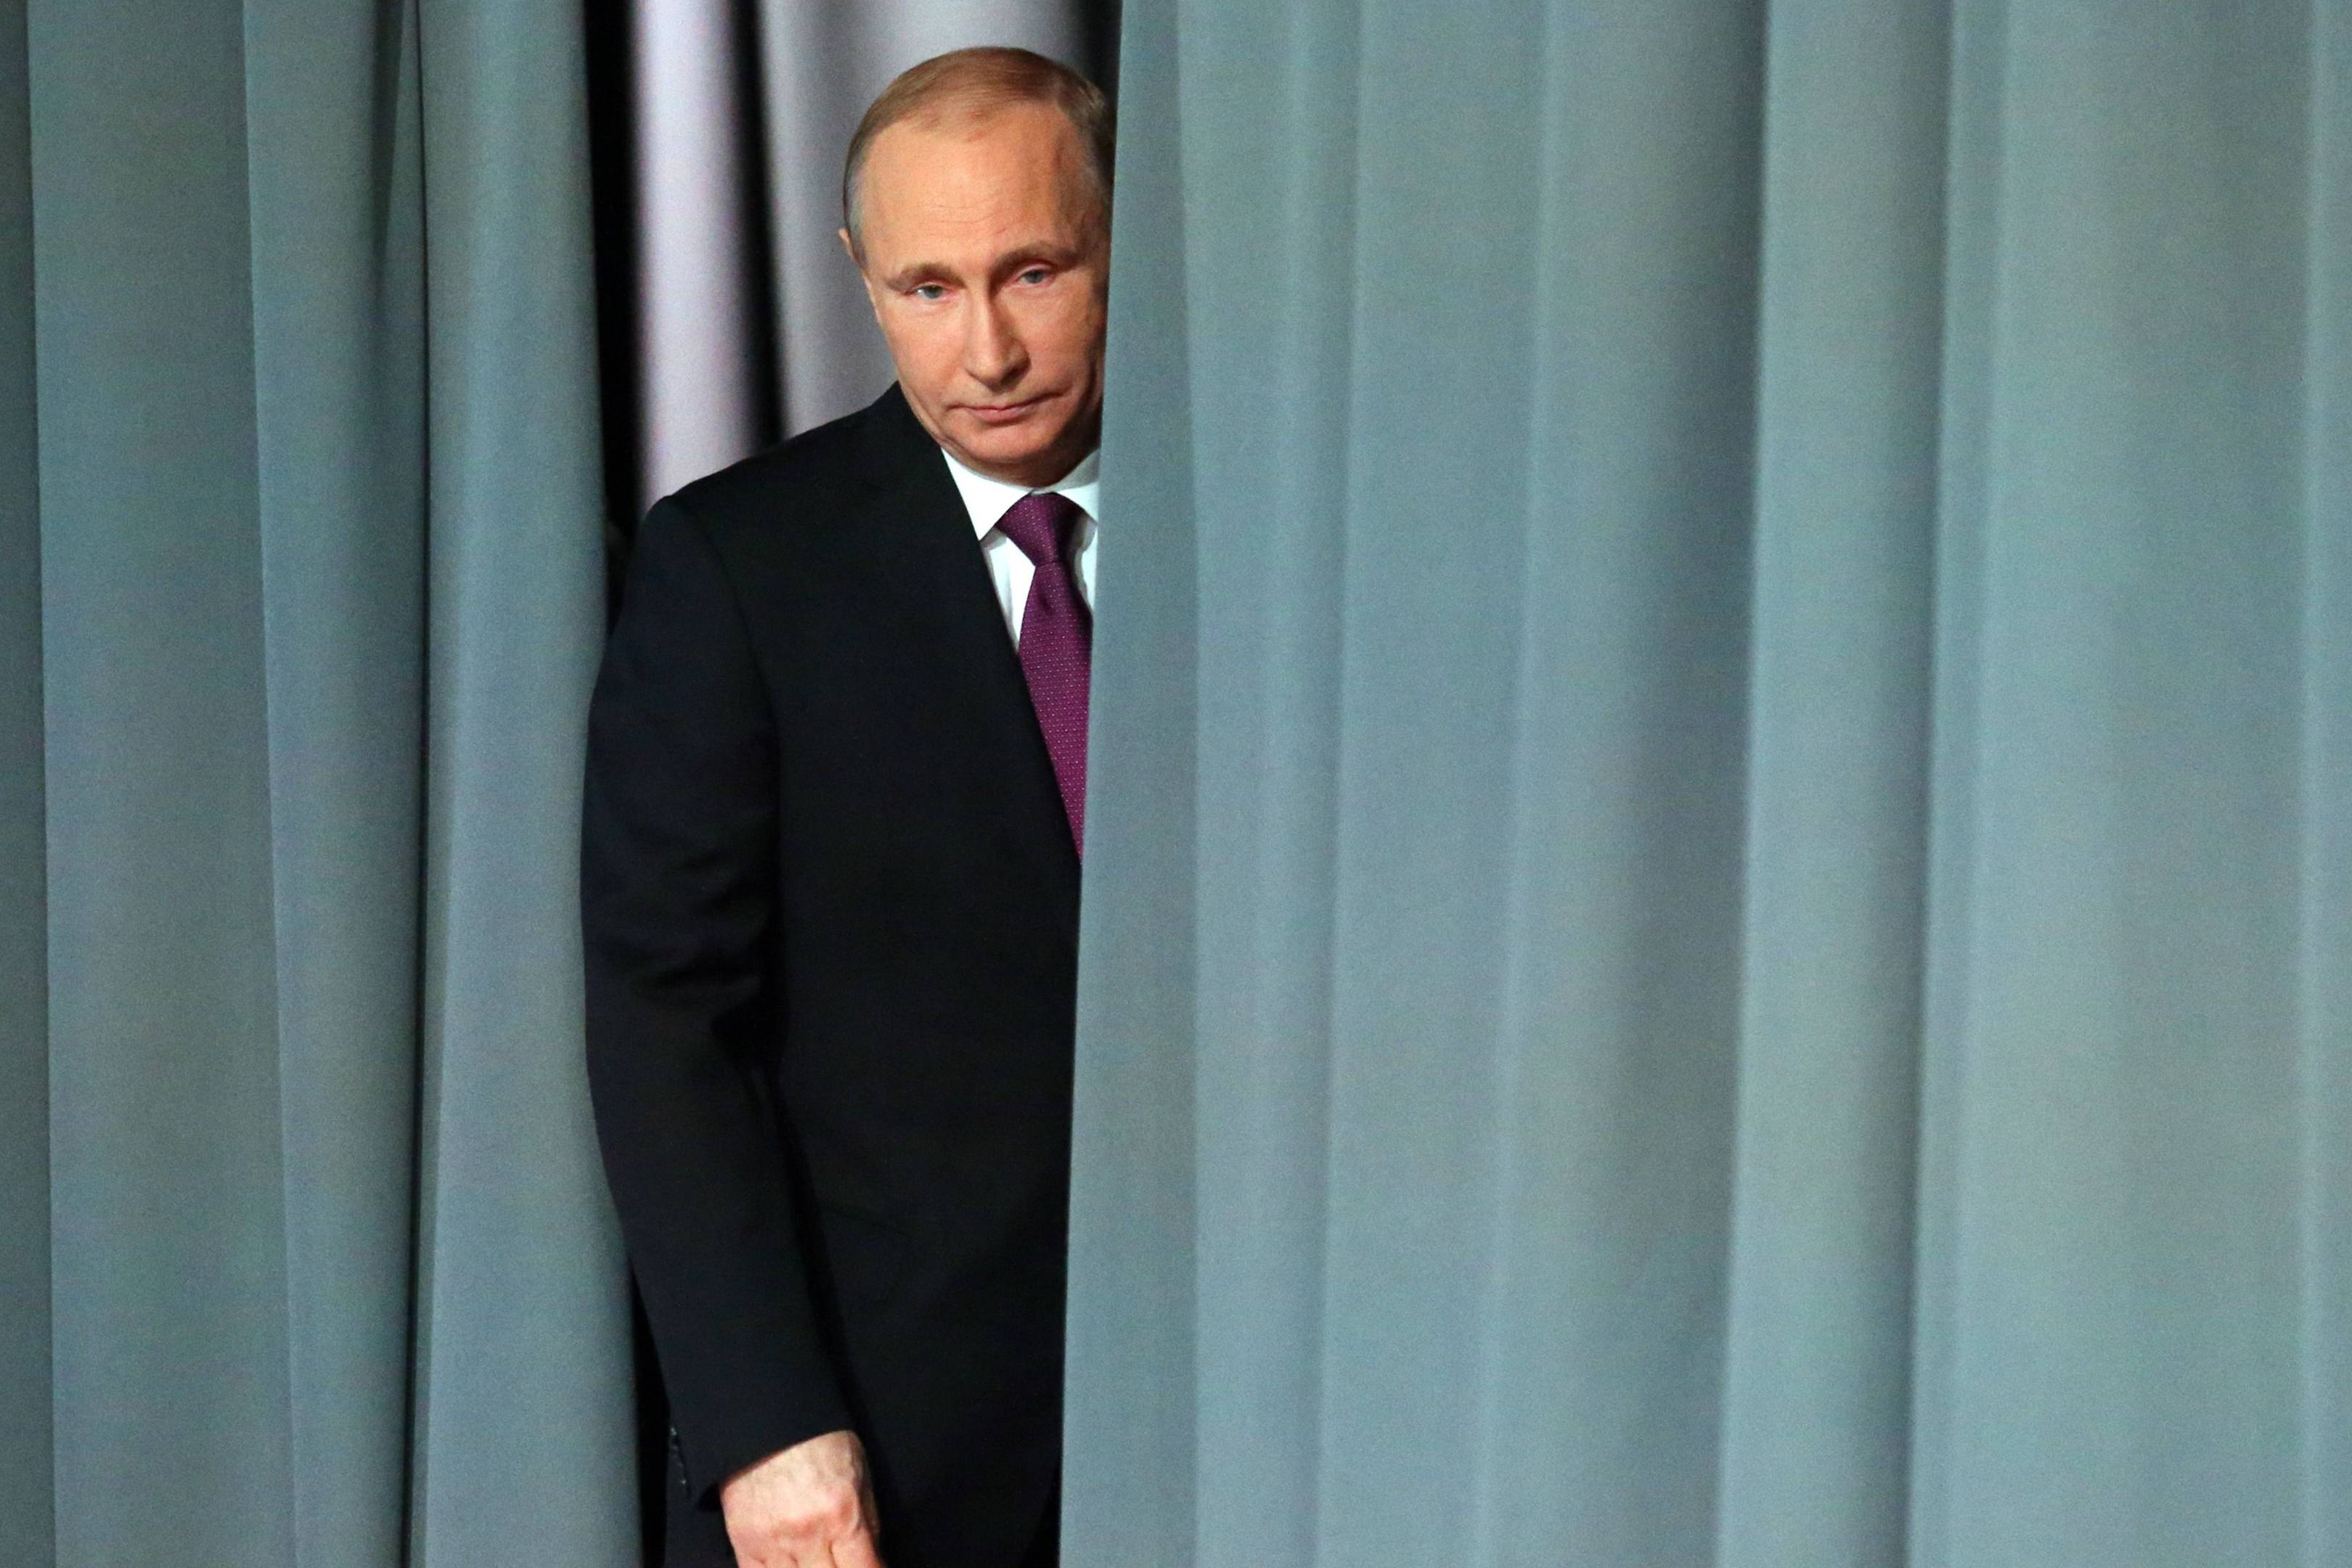 To protect Putin, Russia is spoofing GPS signals on a massive scale